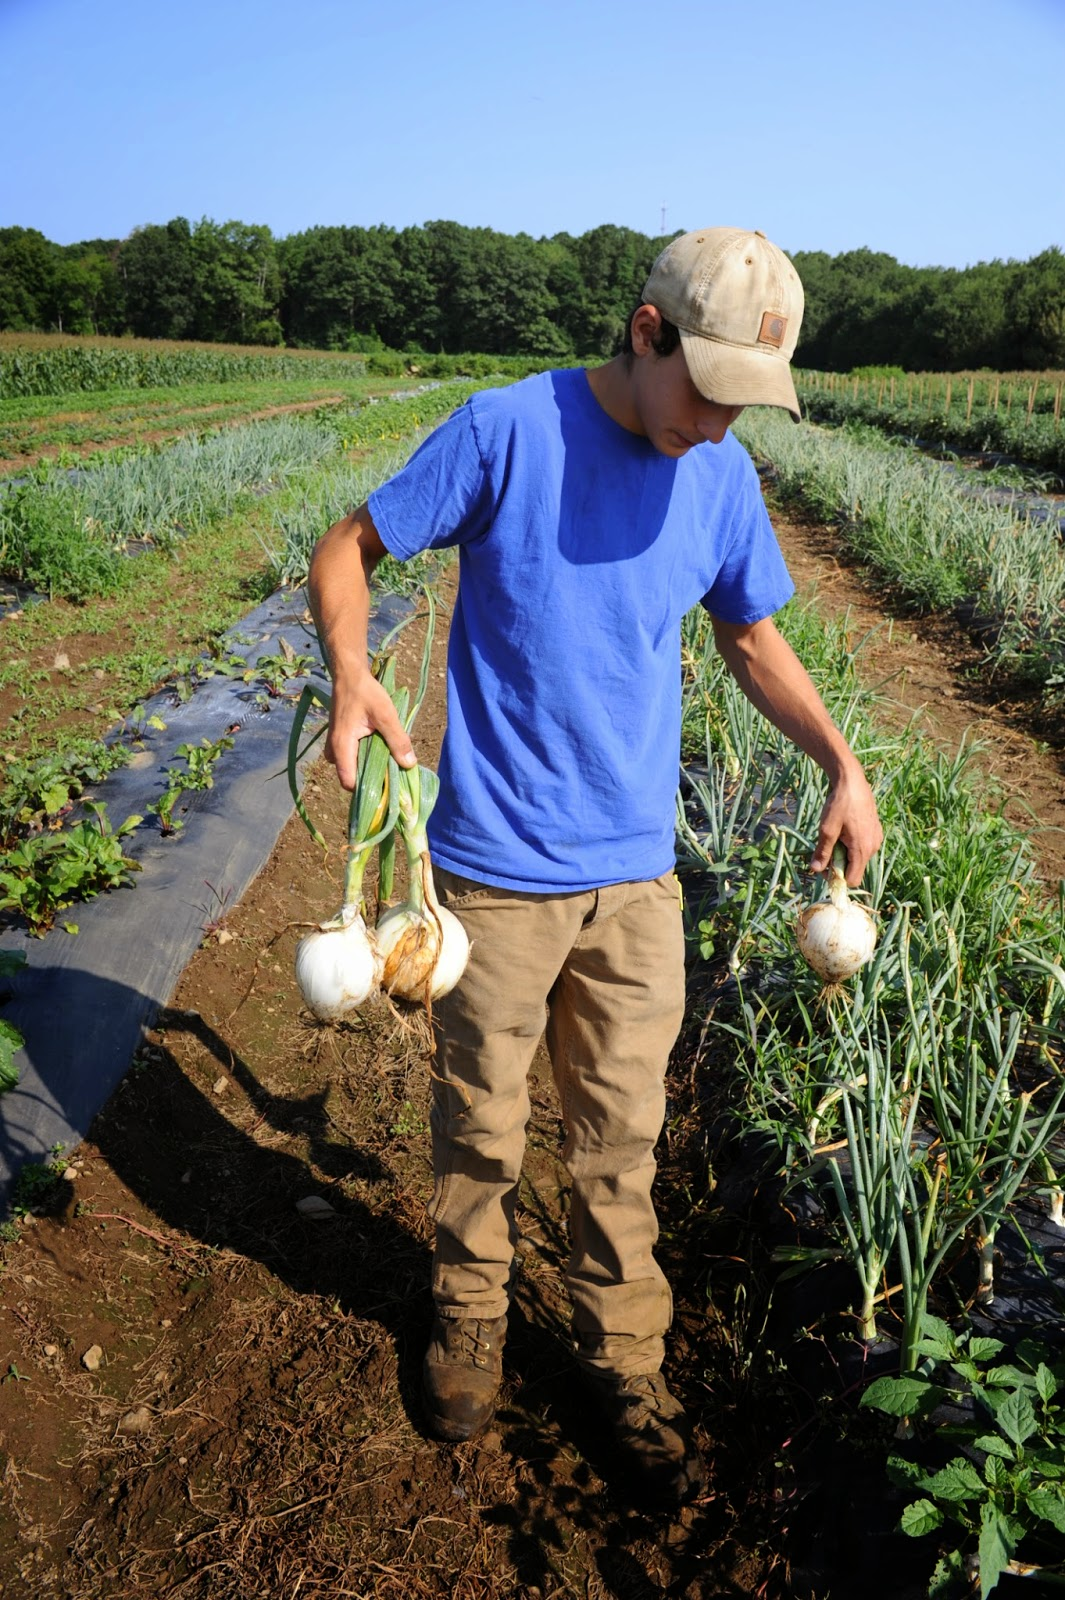 Introducing The Public To Farmers Of Rhode Island Will Provide Insights Into Complex